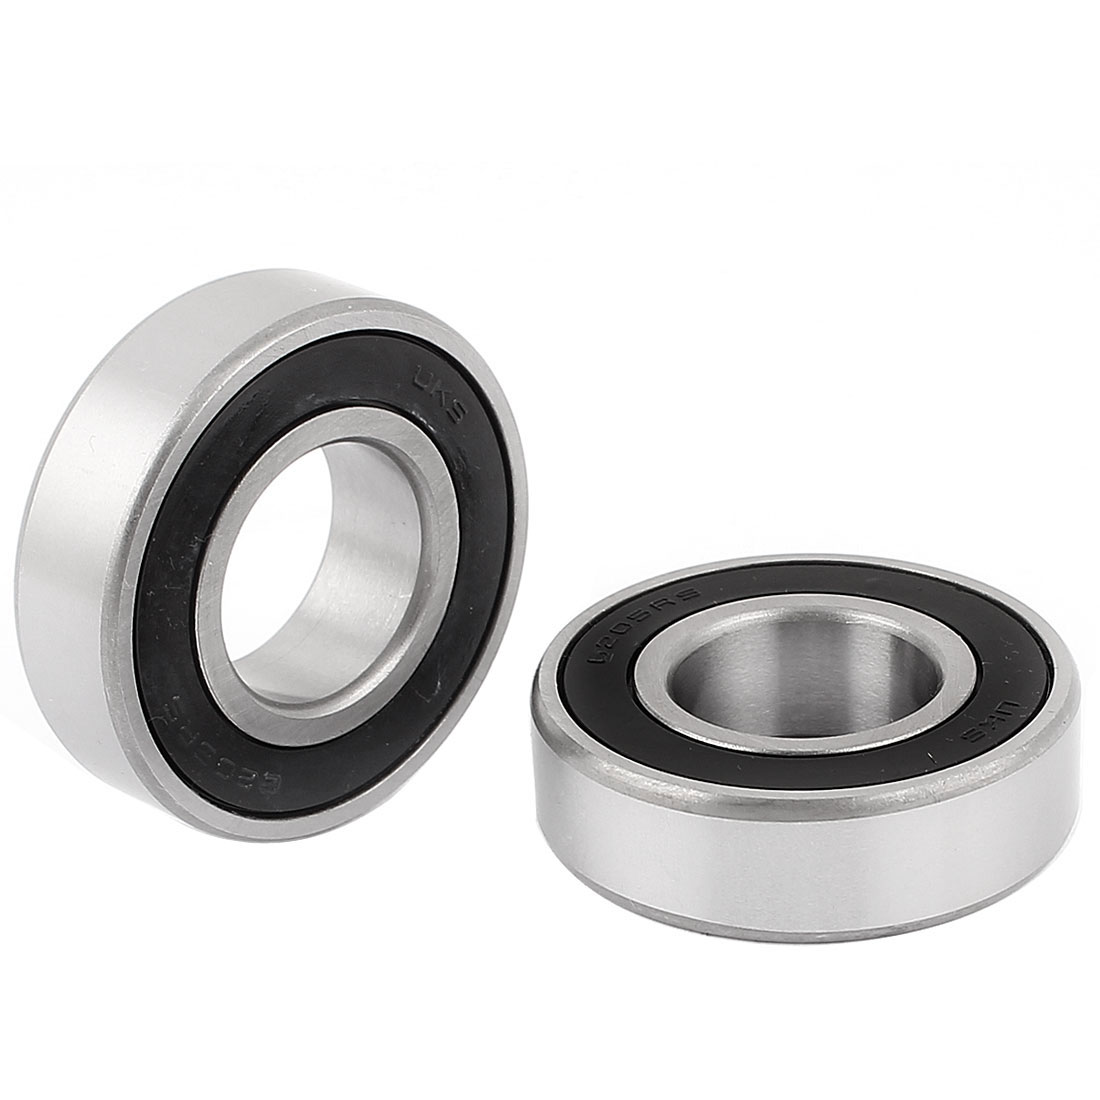 2pcs 6205RS 52mm x 25mm x 15mm Rubber Sealed Single Row Deep Groove Ball Bearing